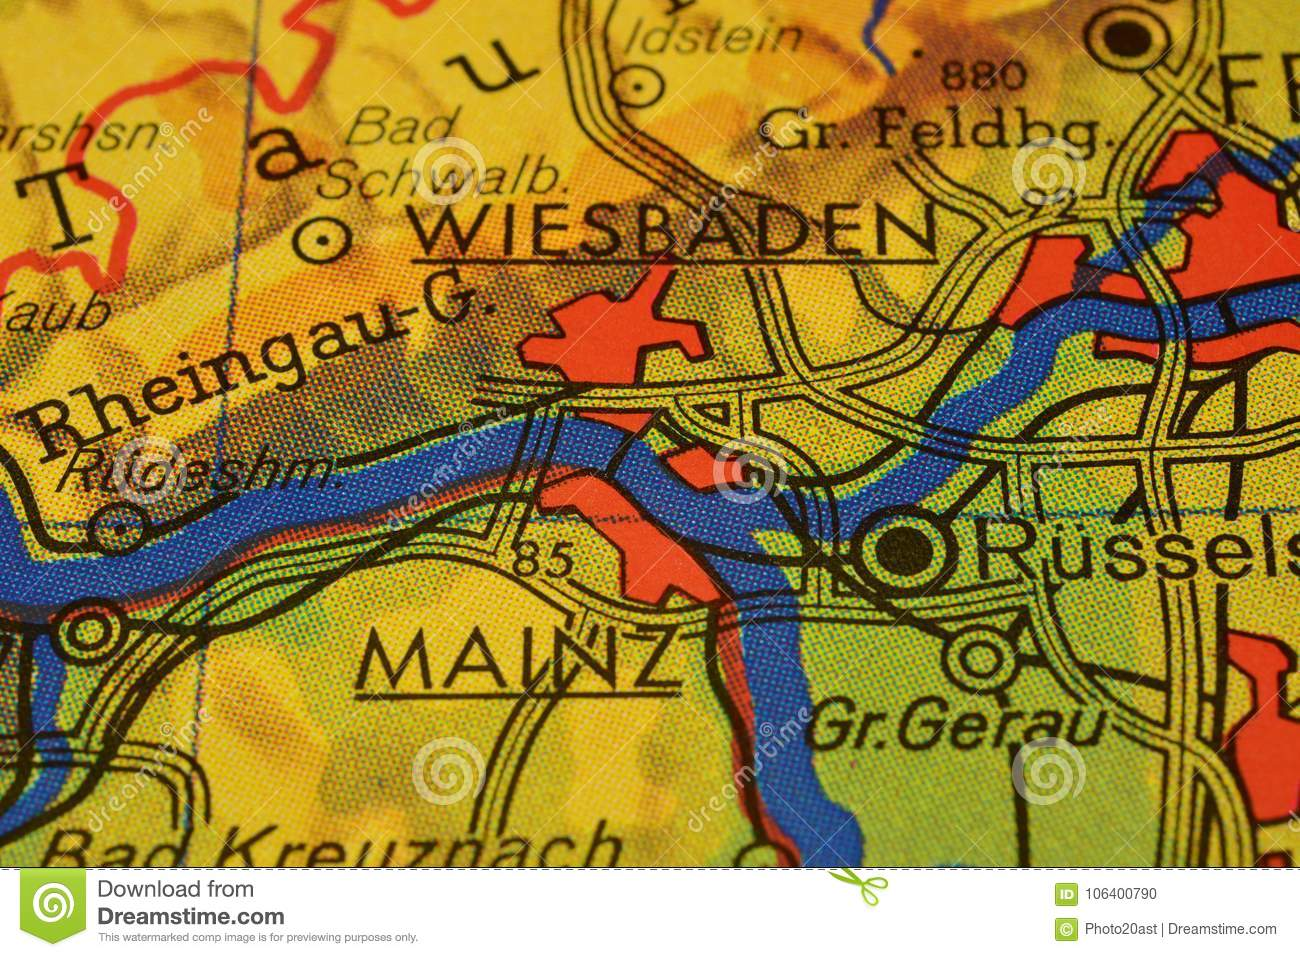 The City Names WIESBADEN And MAINZ On The Map Stock Photo Image of